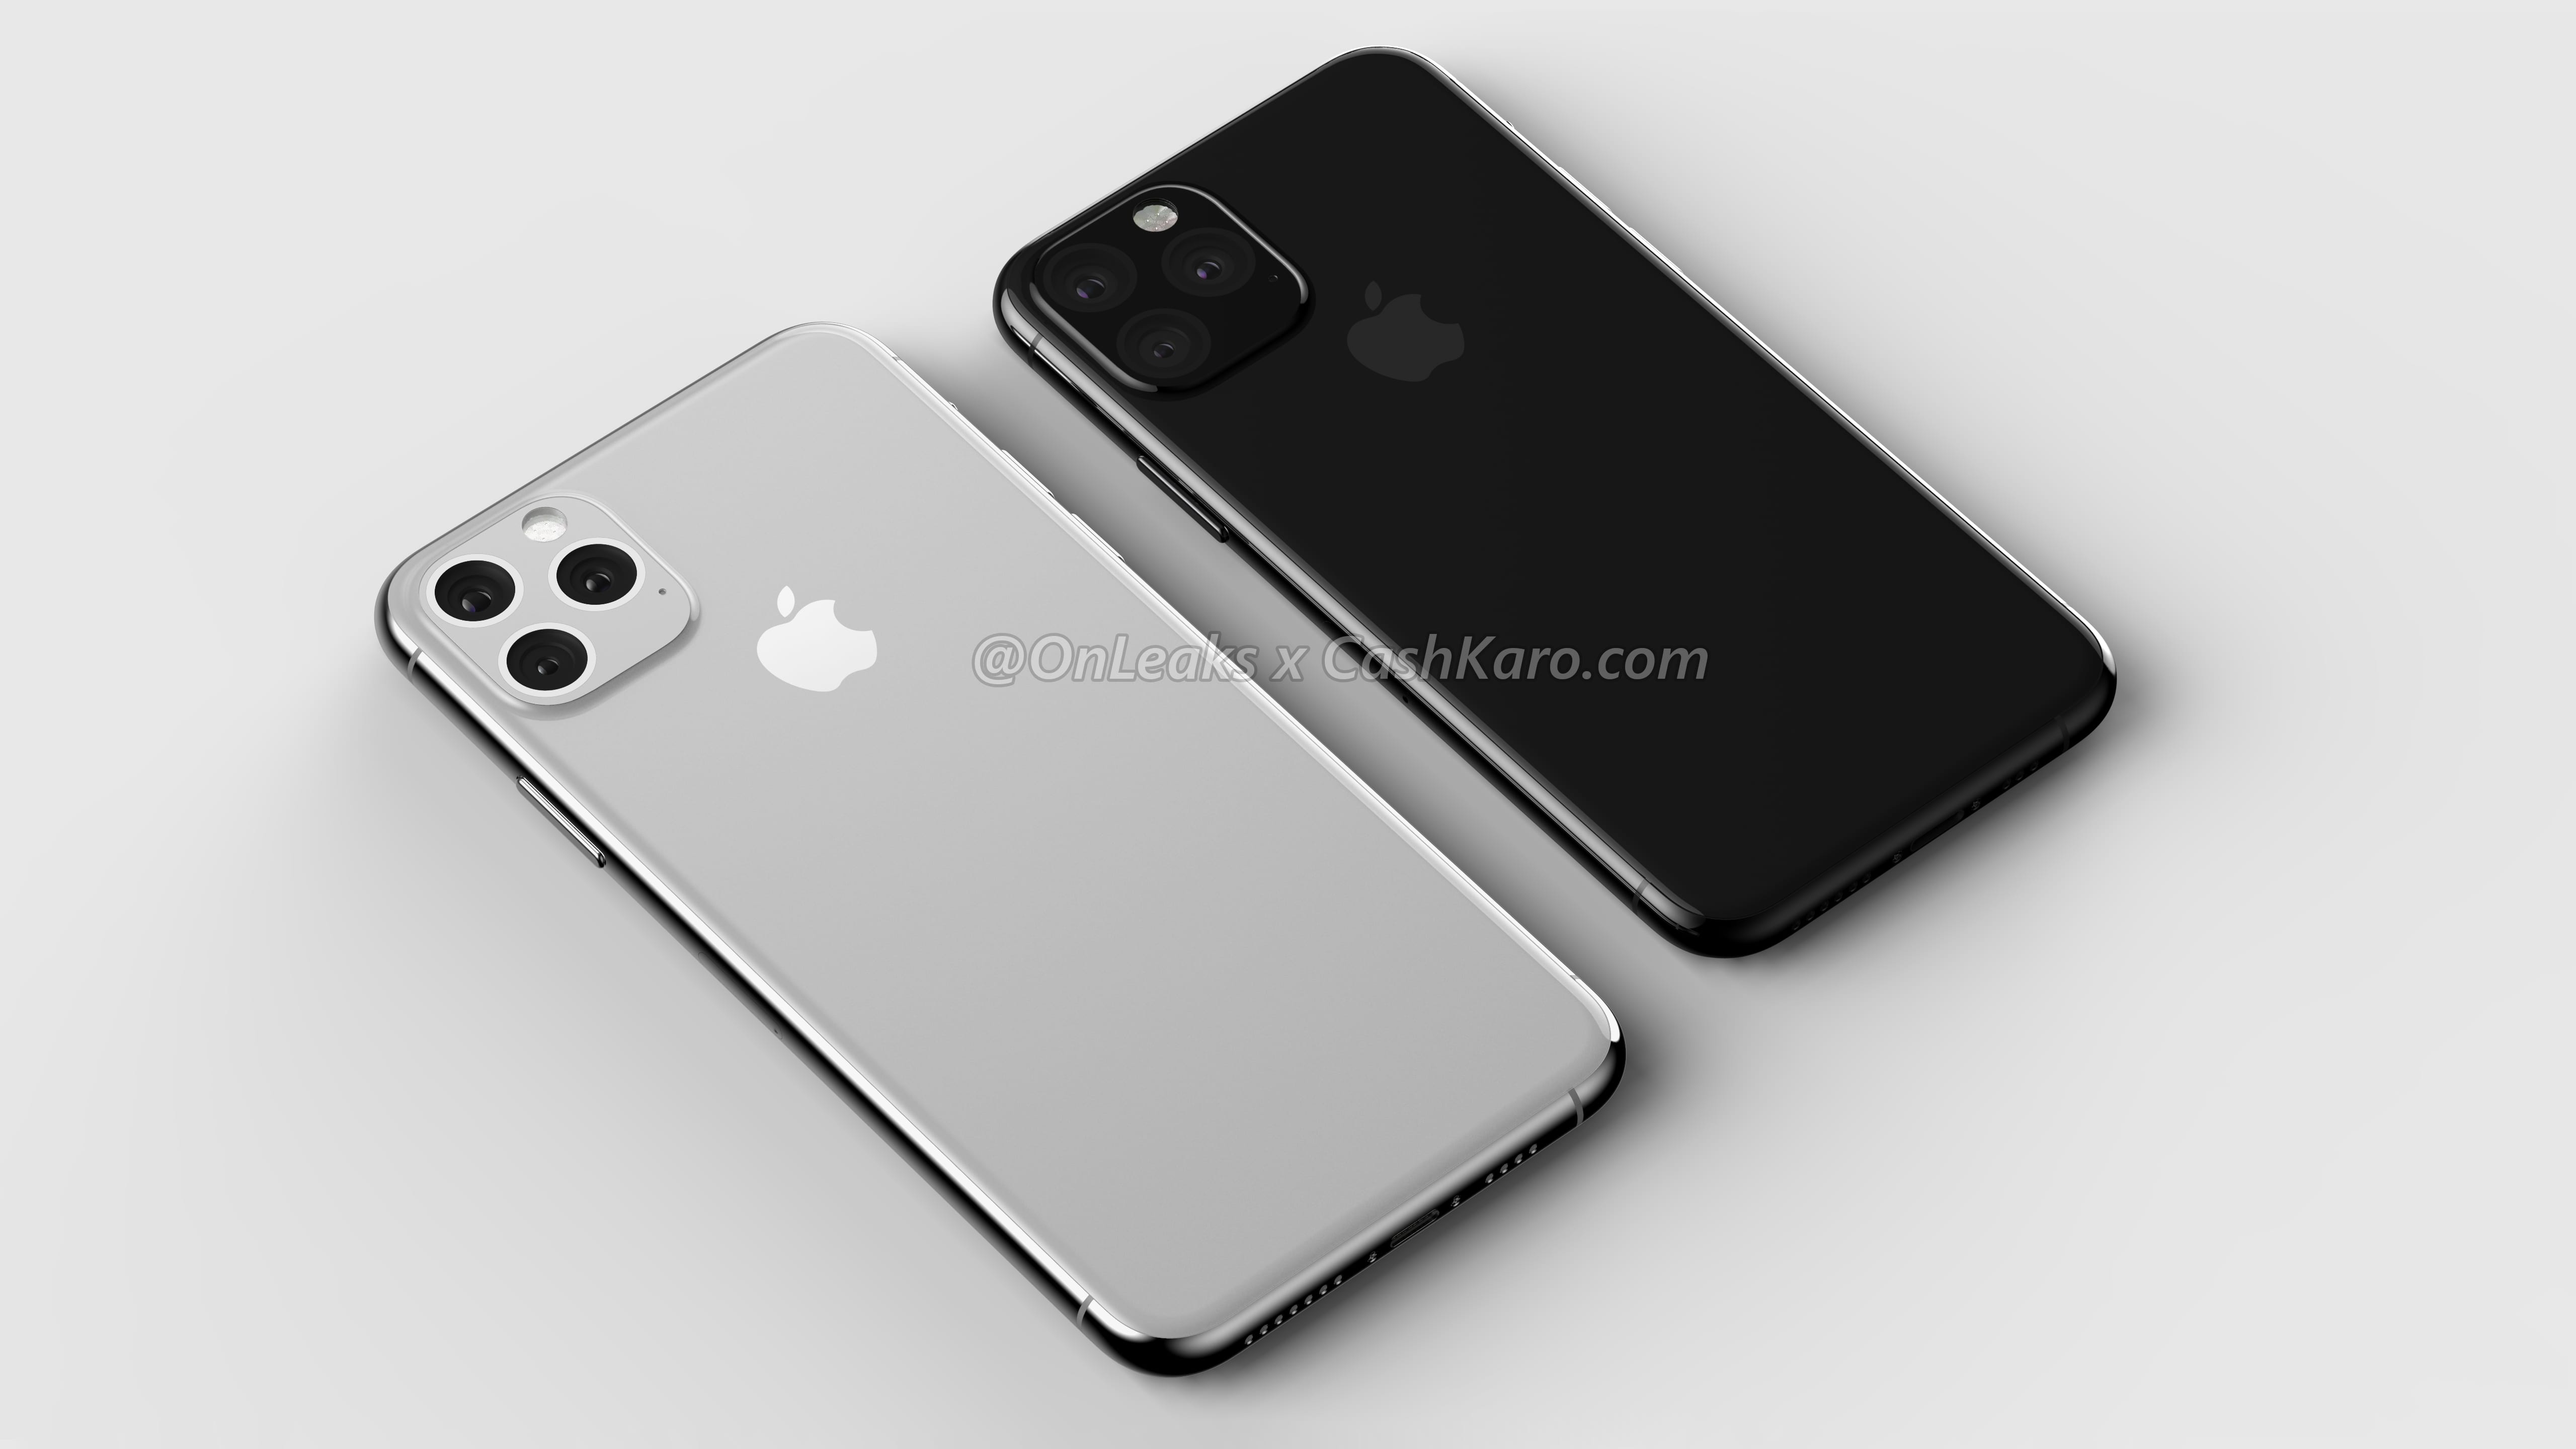 Iphone 11 Max Cad Renders Offer Up 360 Degree Video And Iphone 11 Comparisons 9to5mac